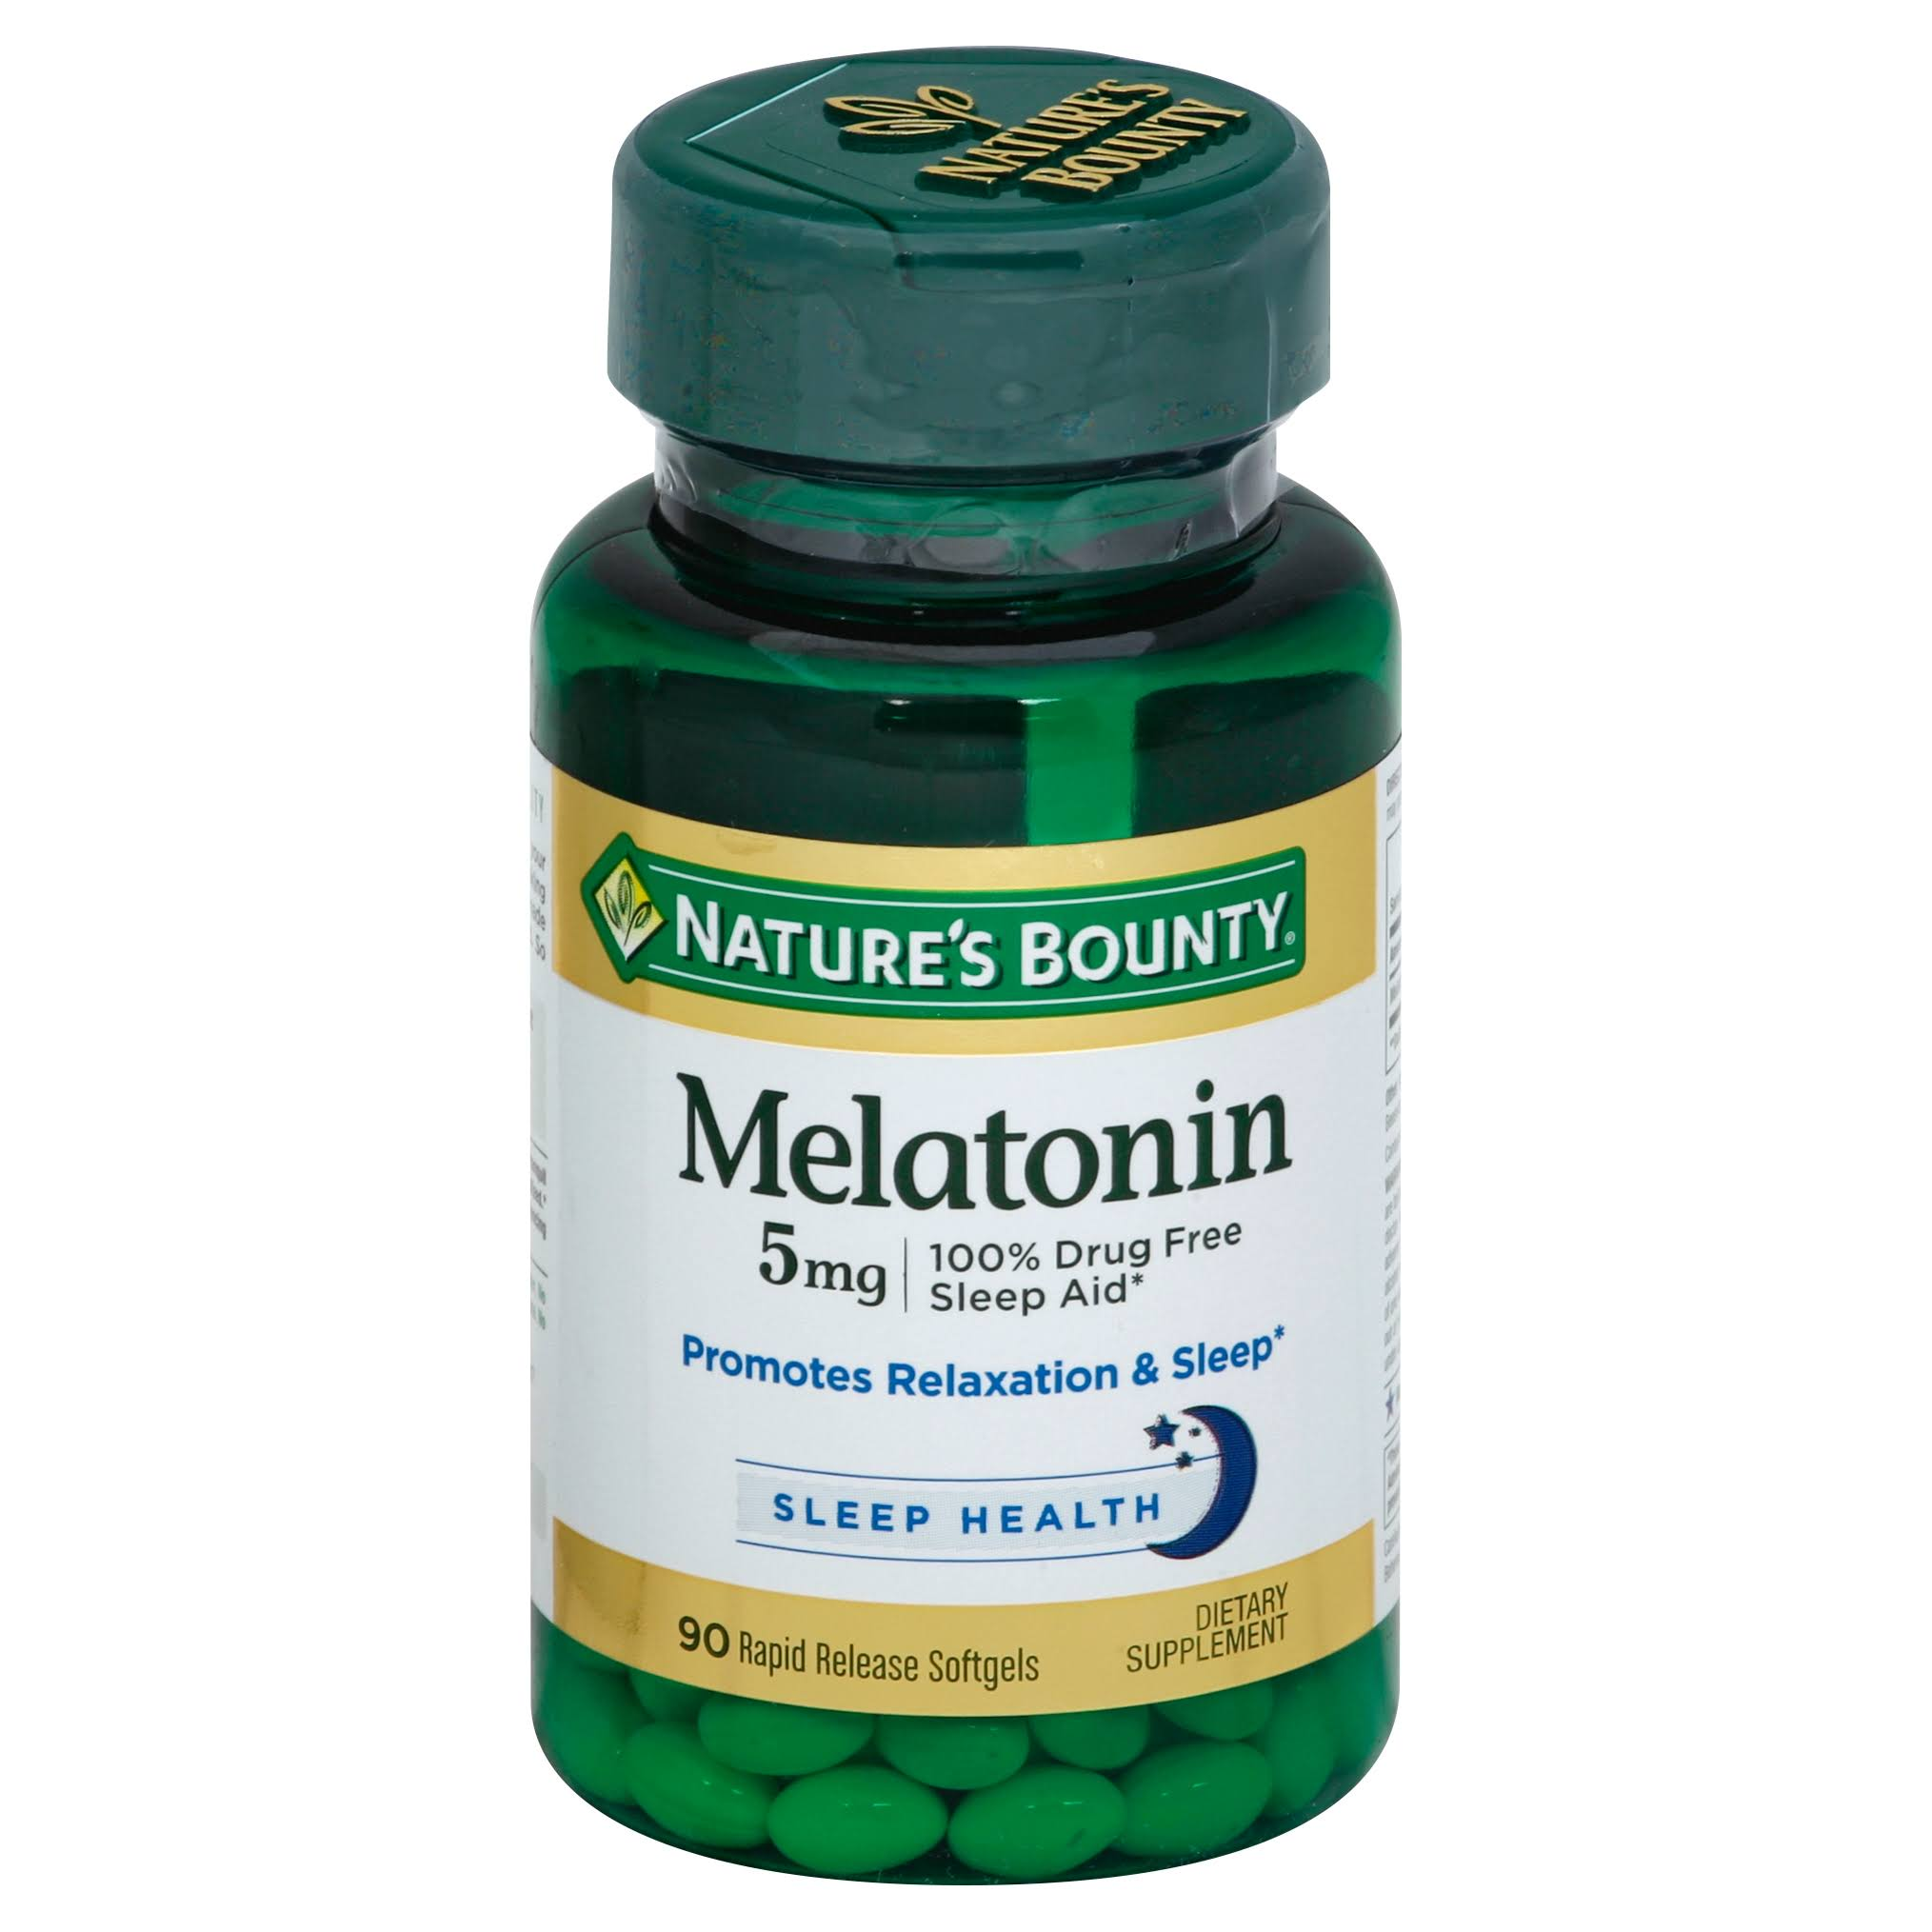 Nature's Bounty Melatonin Rapid Release Softgels